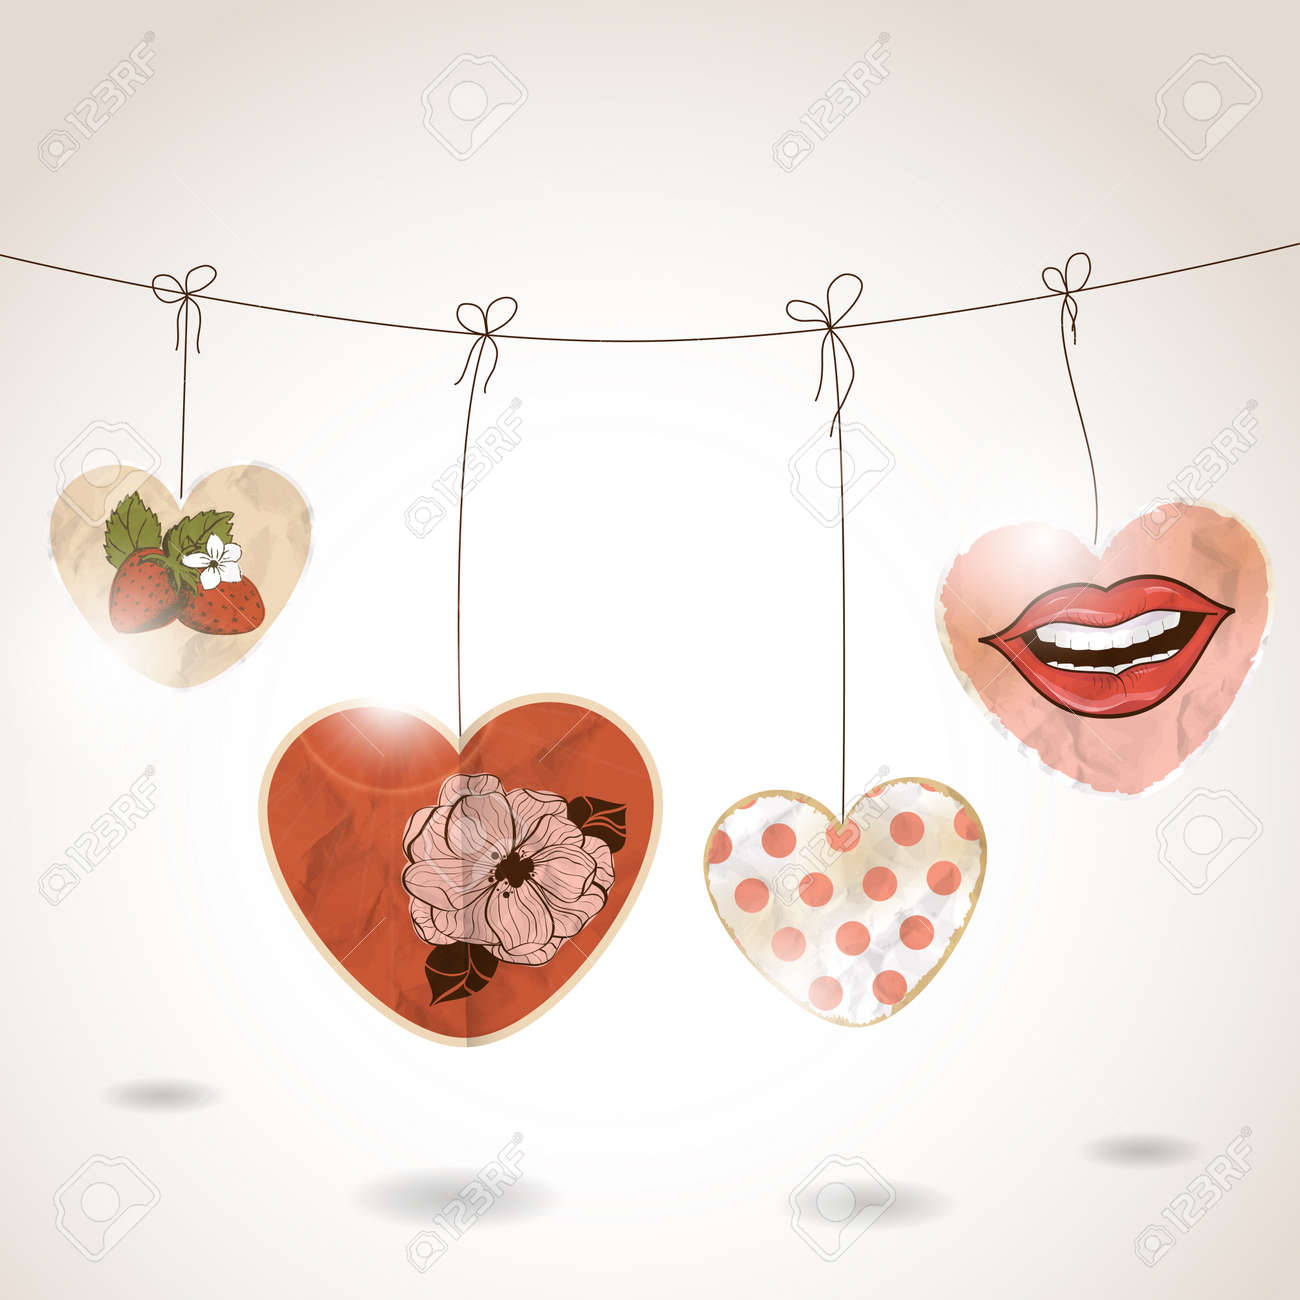 St Valentine's day greeting card Stock Vector - 12406353